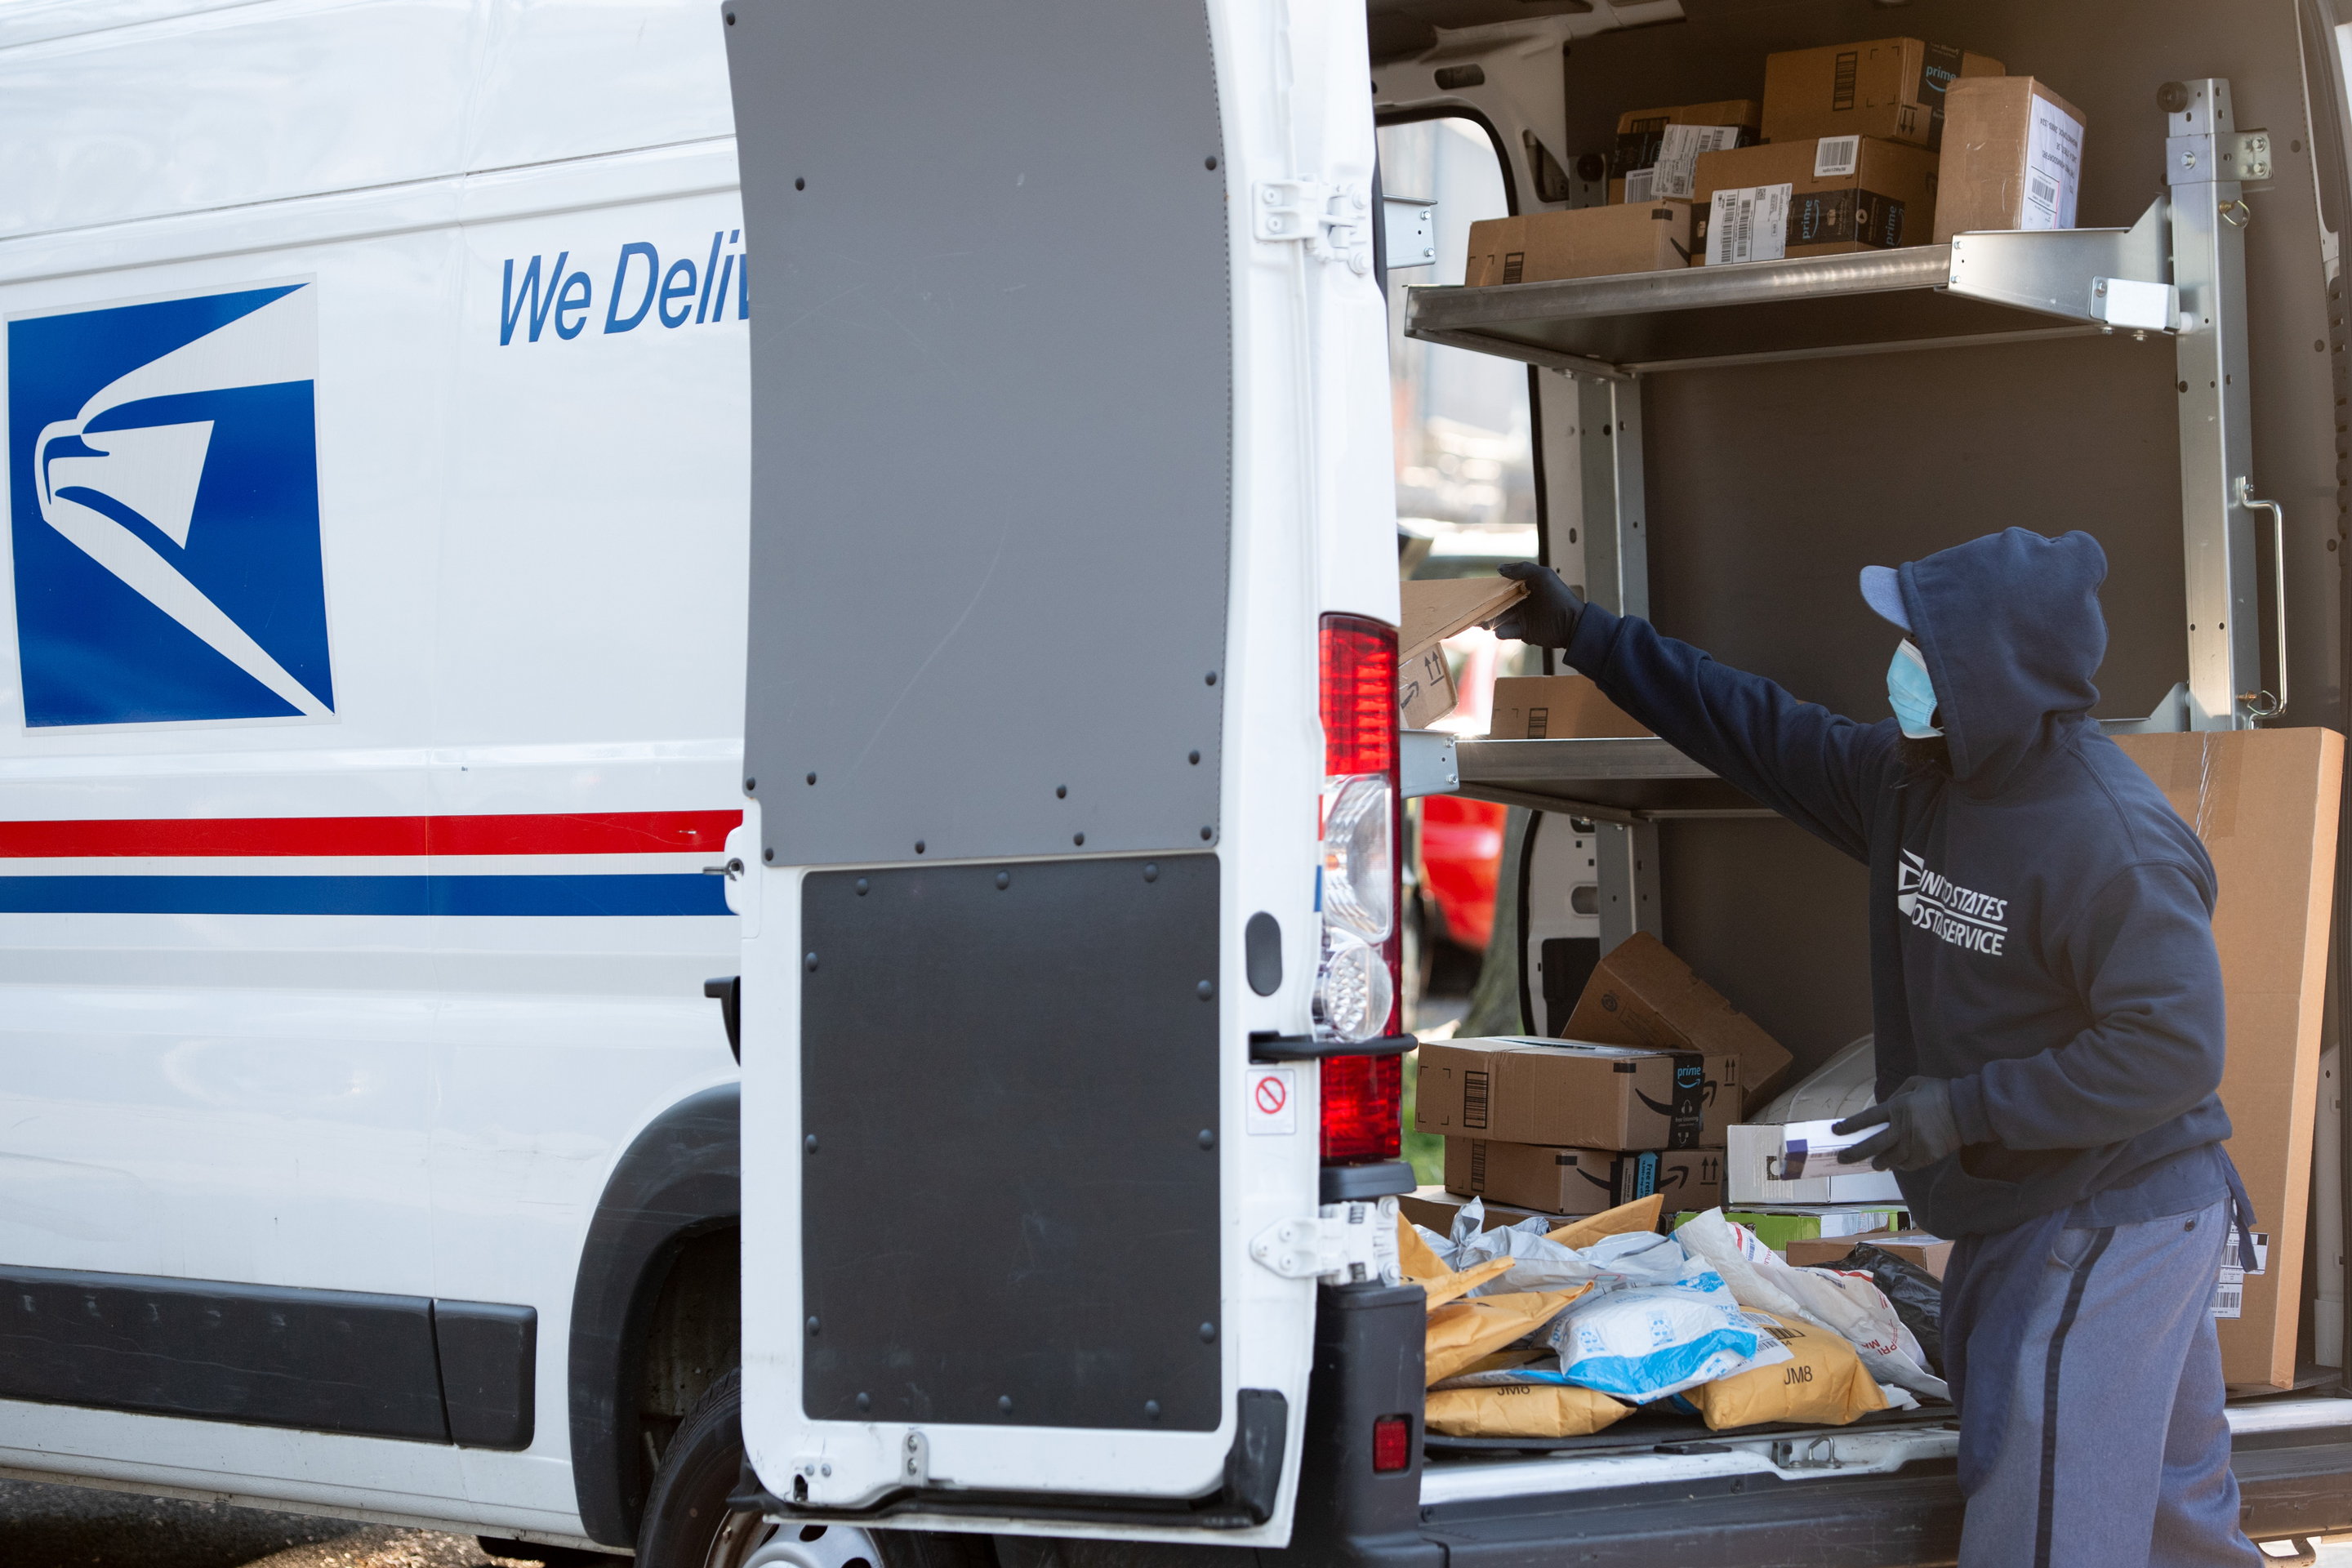 Trump-backed postmaster general plans to slow mail delivery thumbnail